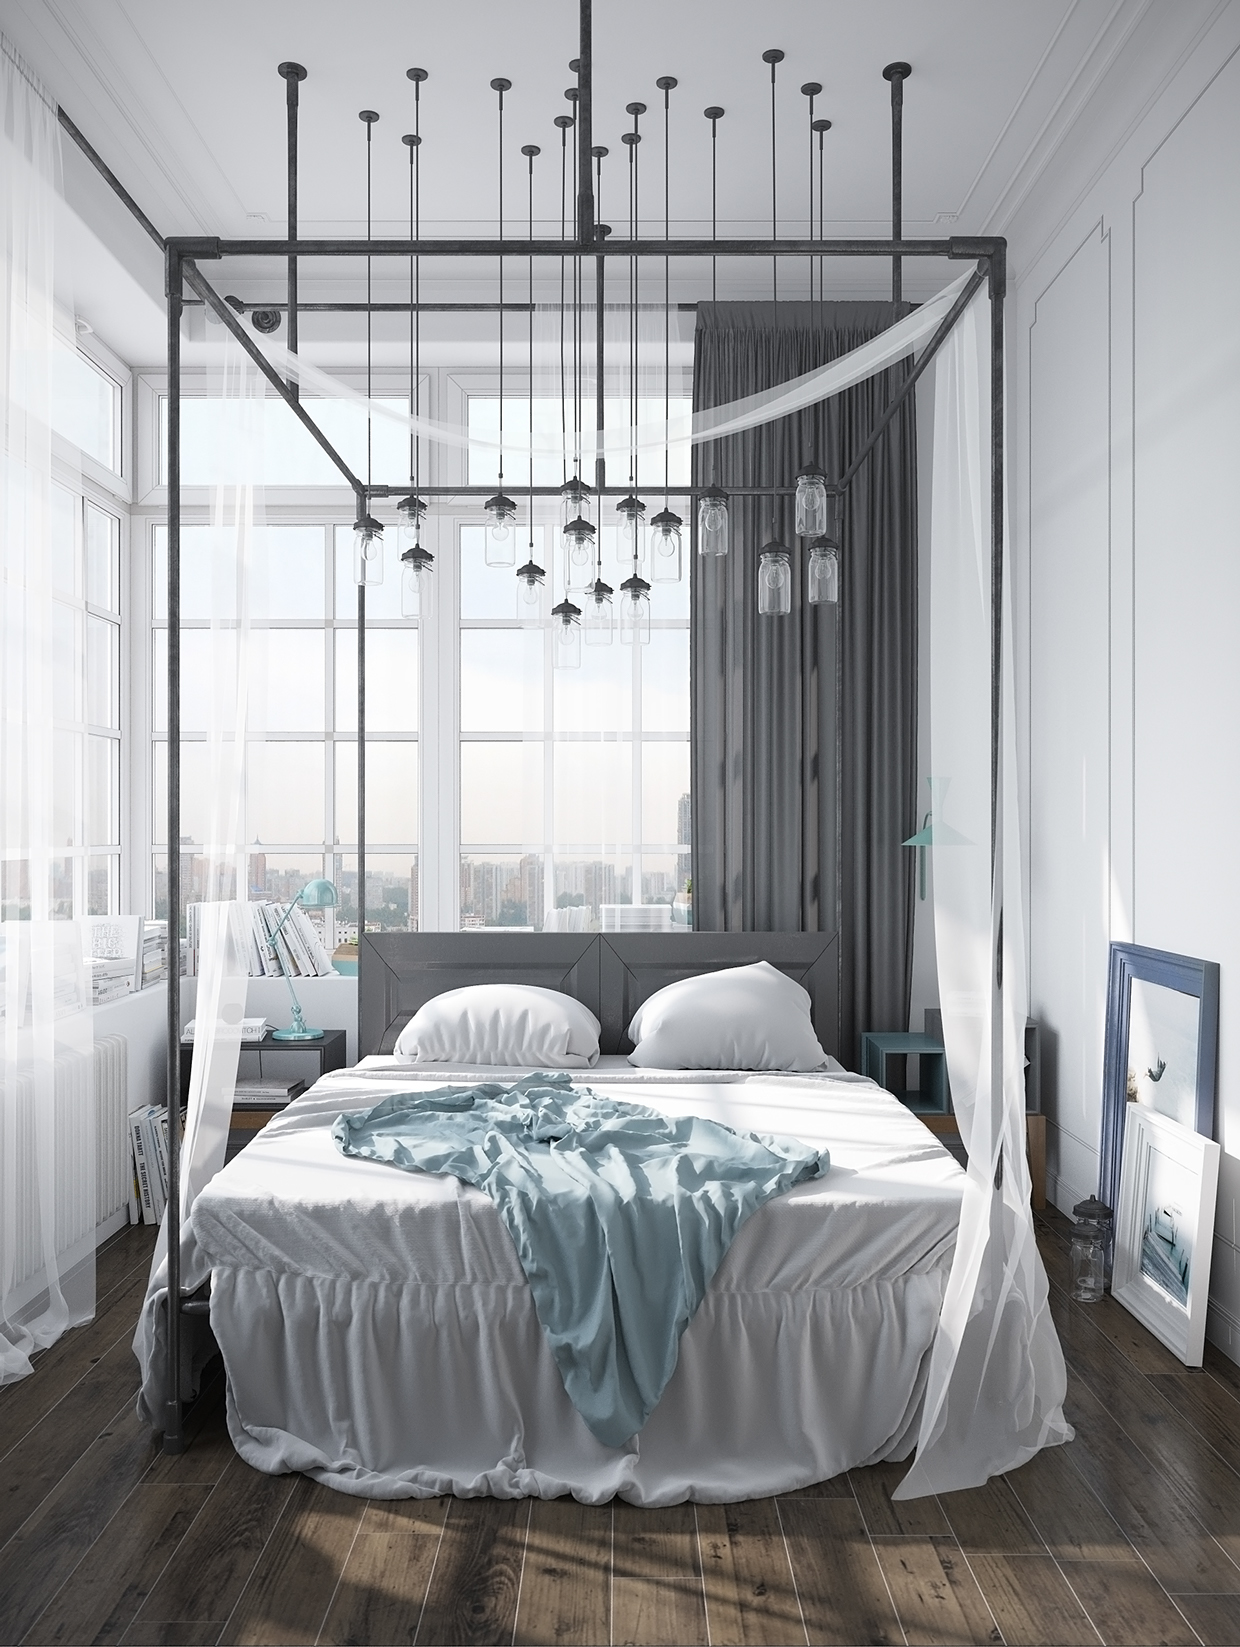 Modern canopy bed tumblr - Modern Canopy Bed Tumblr 11